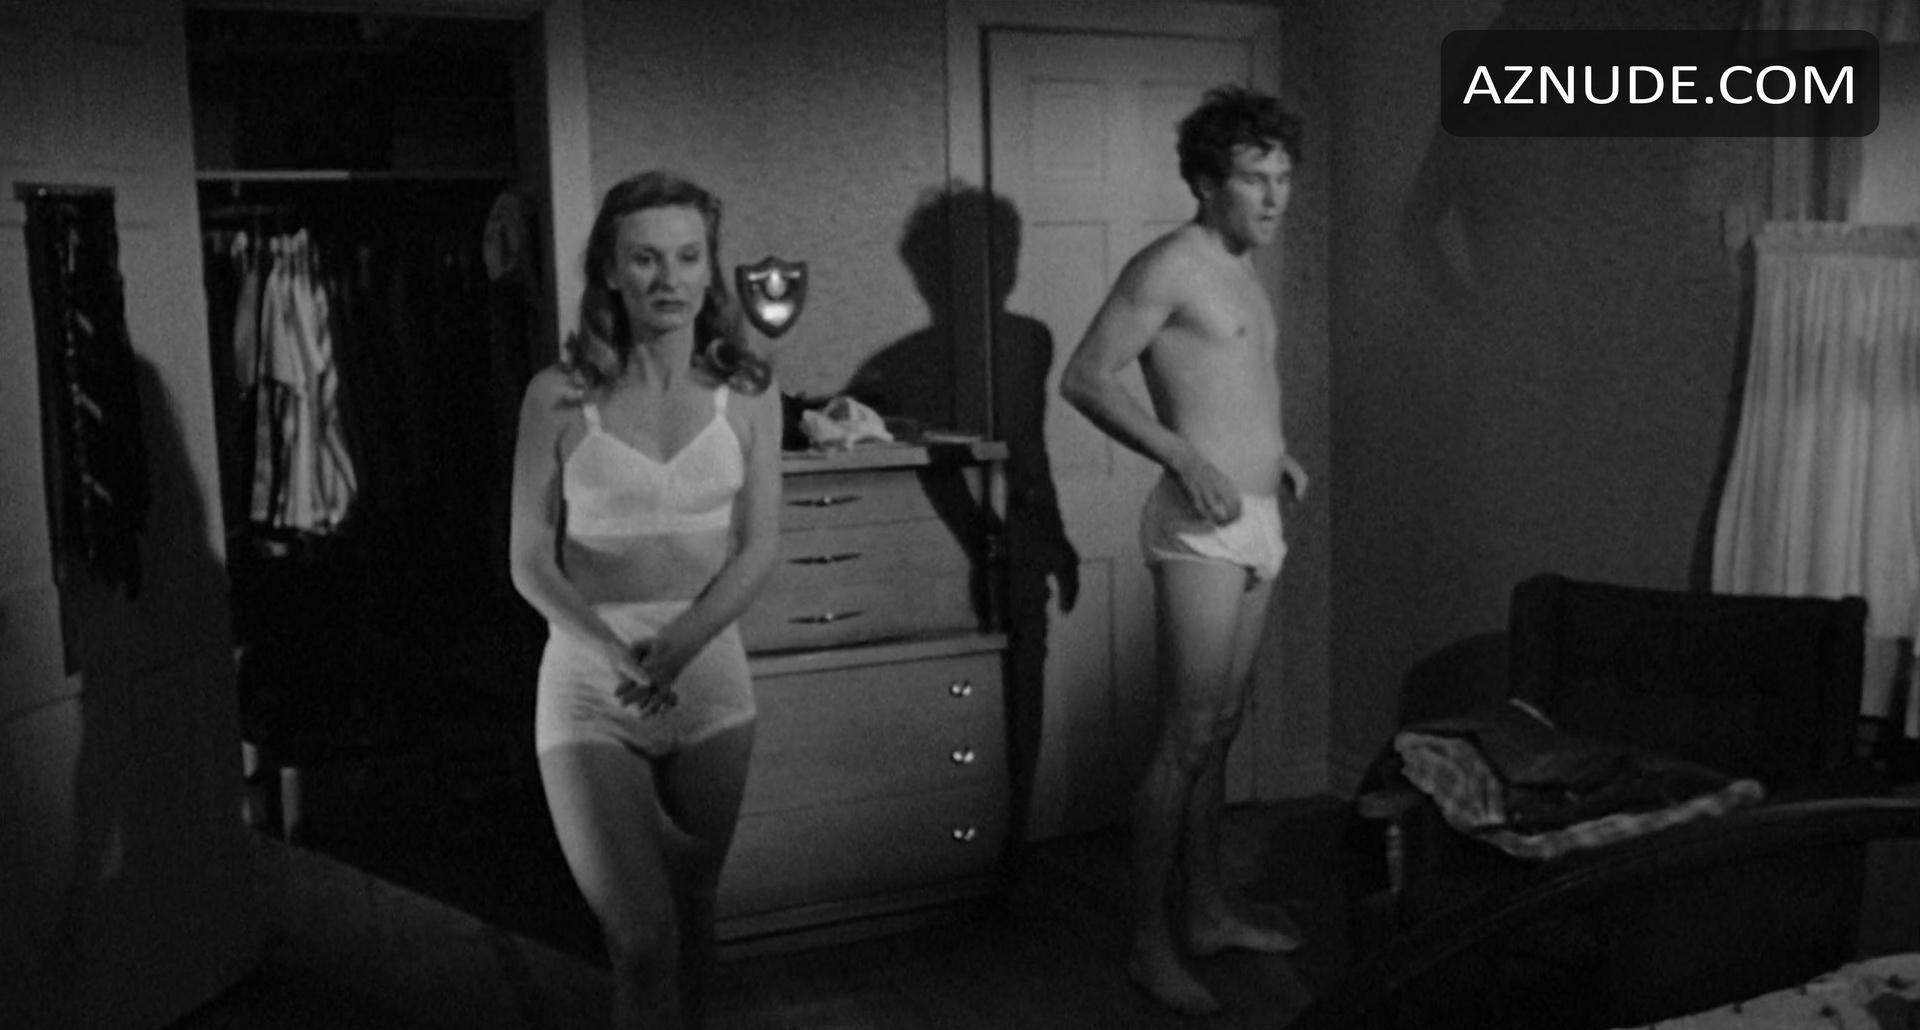 Cloris leachman nude can